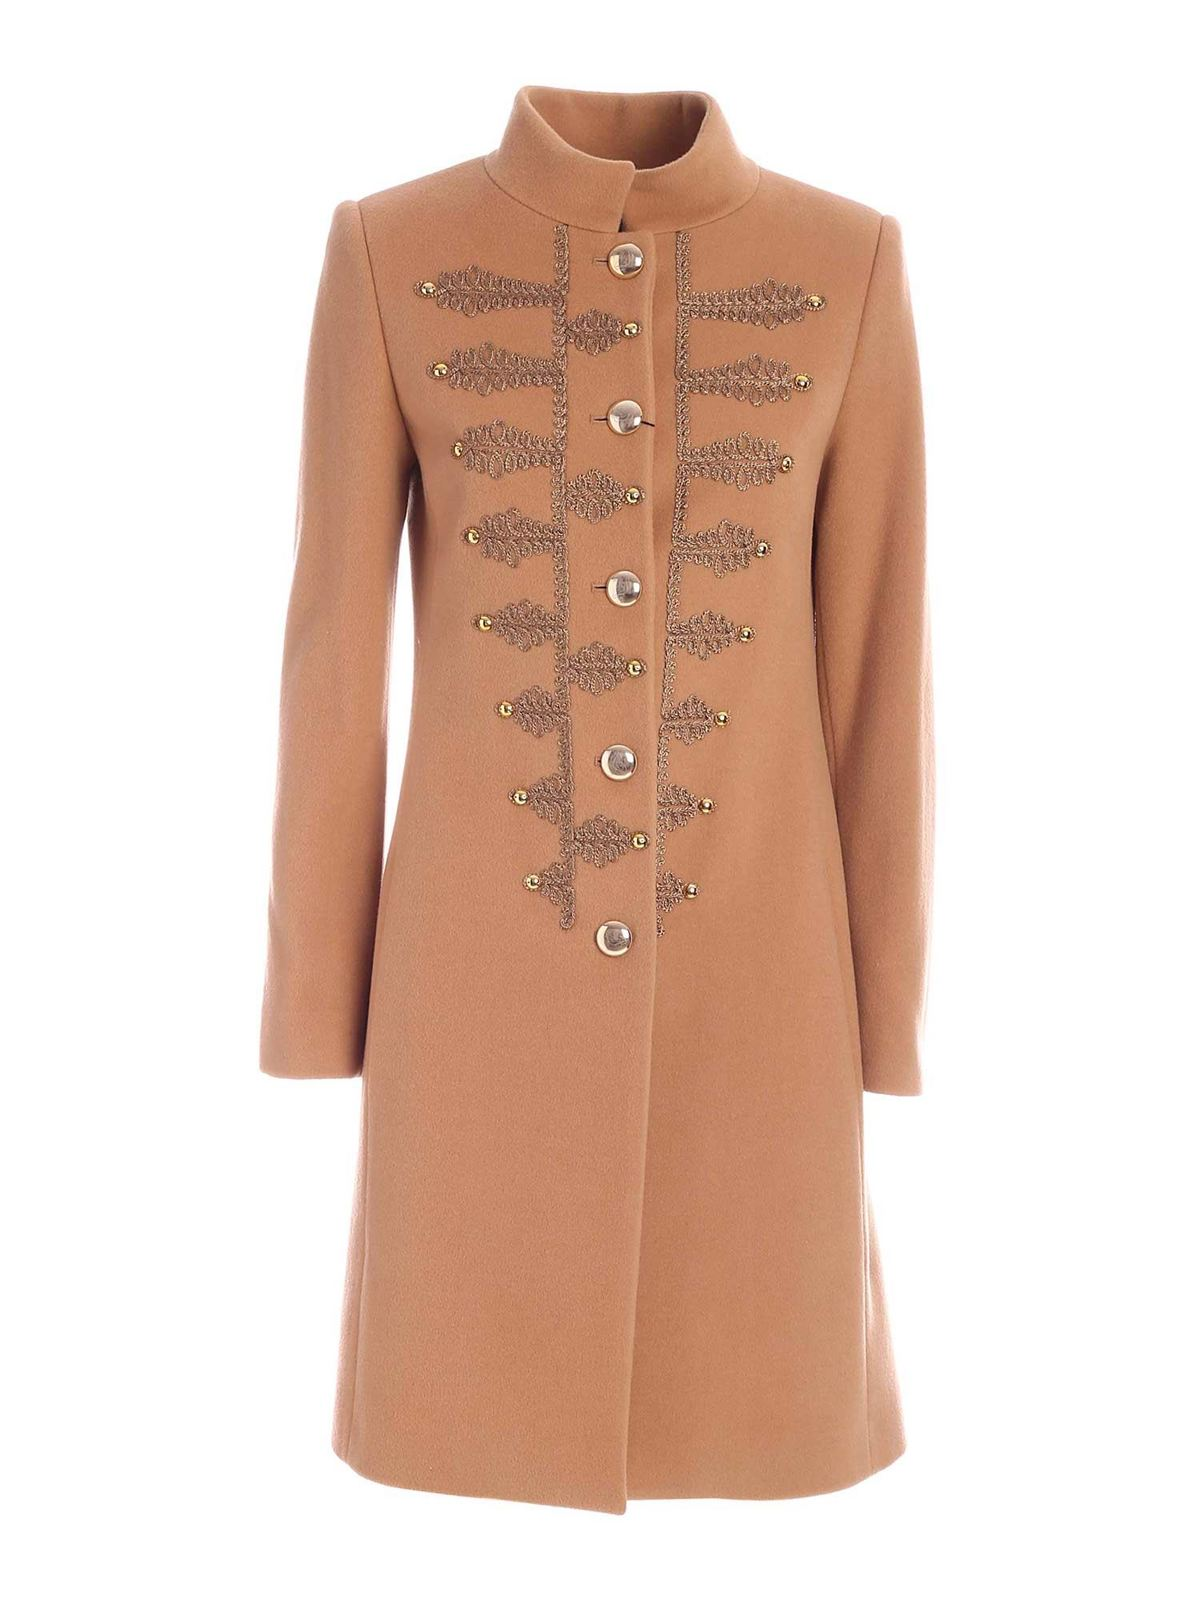 Blumarine CONTRASTING EMBROIDERY COAT IN CAMEL COLOR